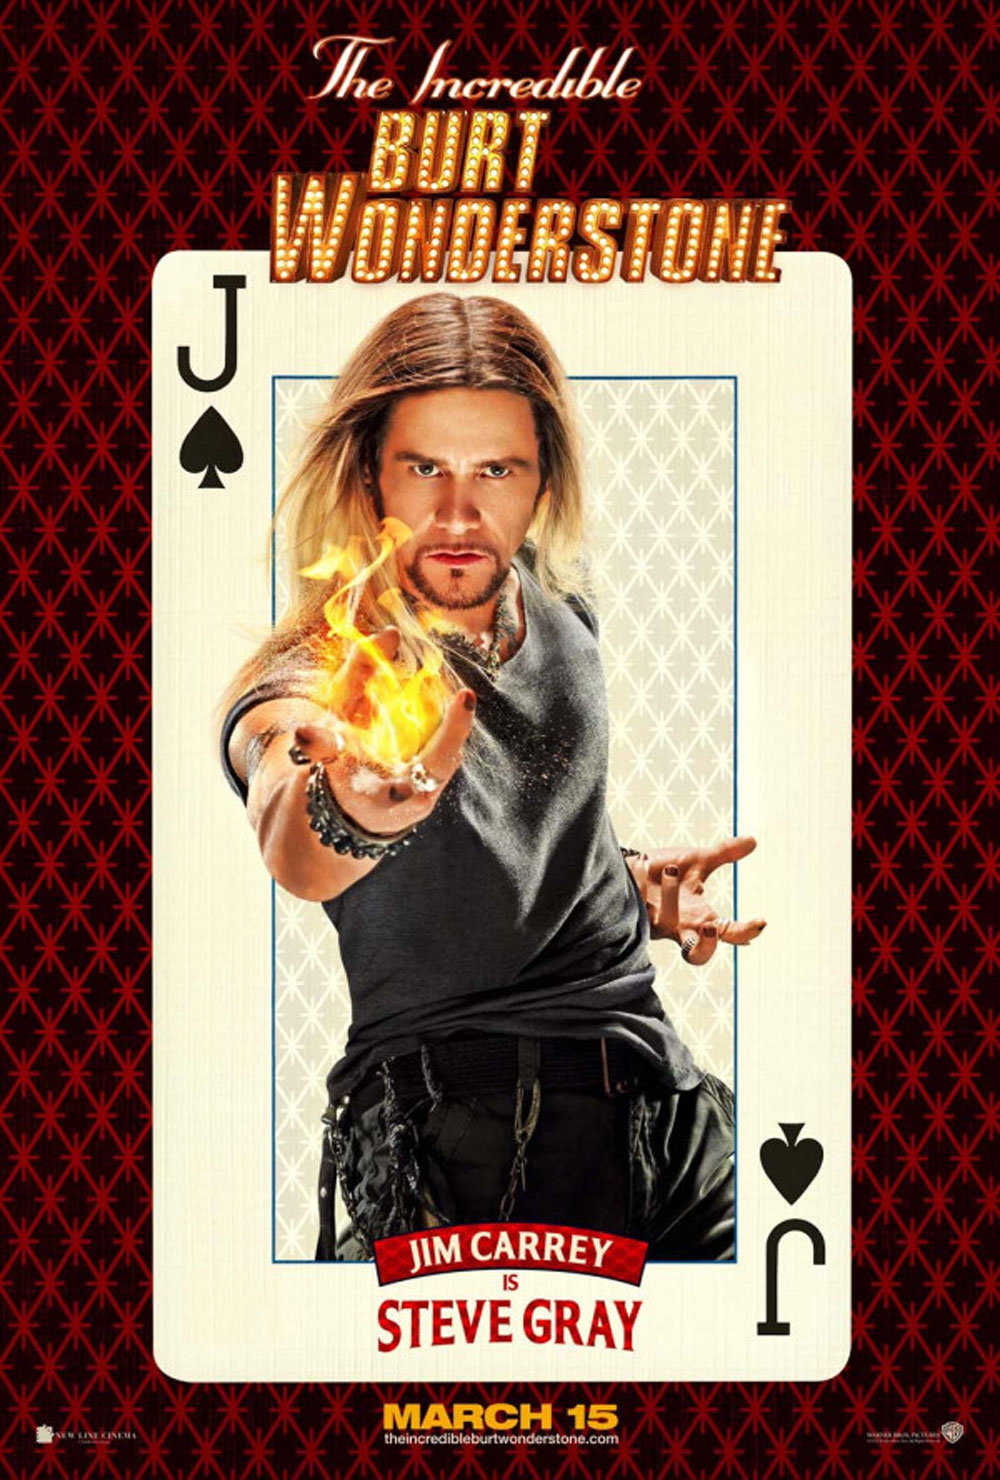 Jim-Carrey-Burt-Wonderstone.jpg